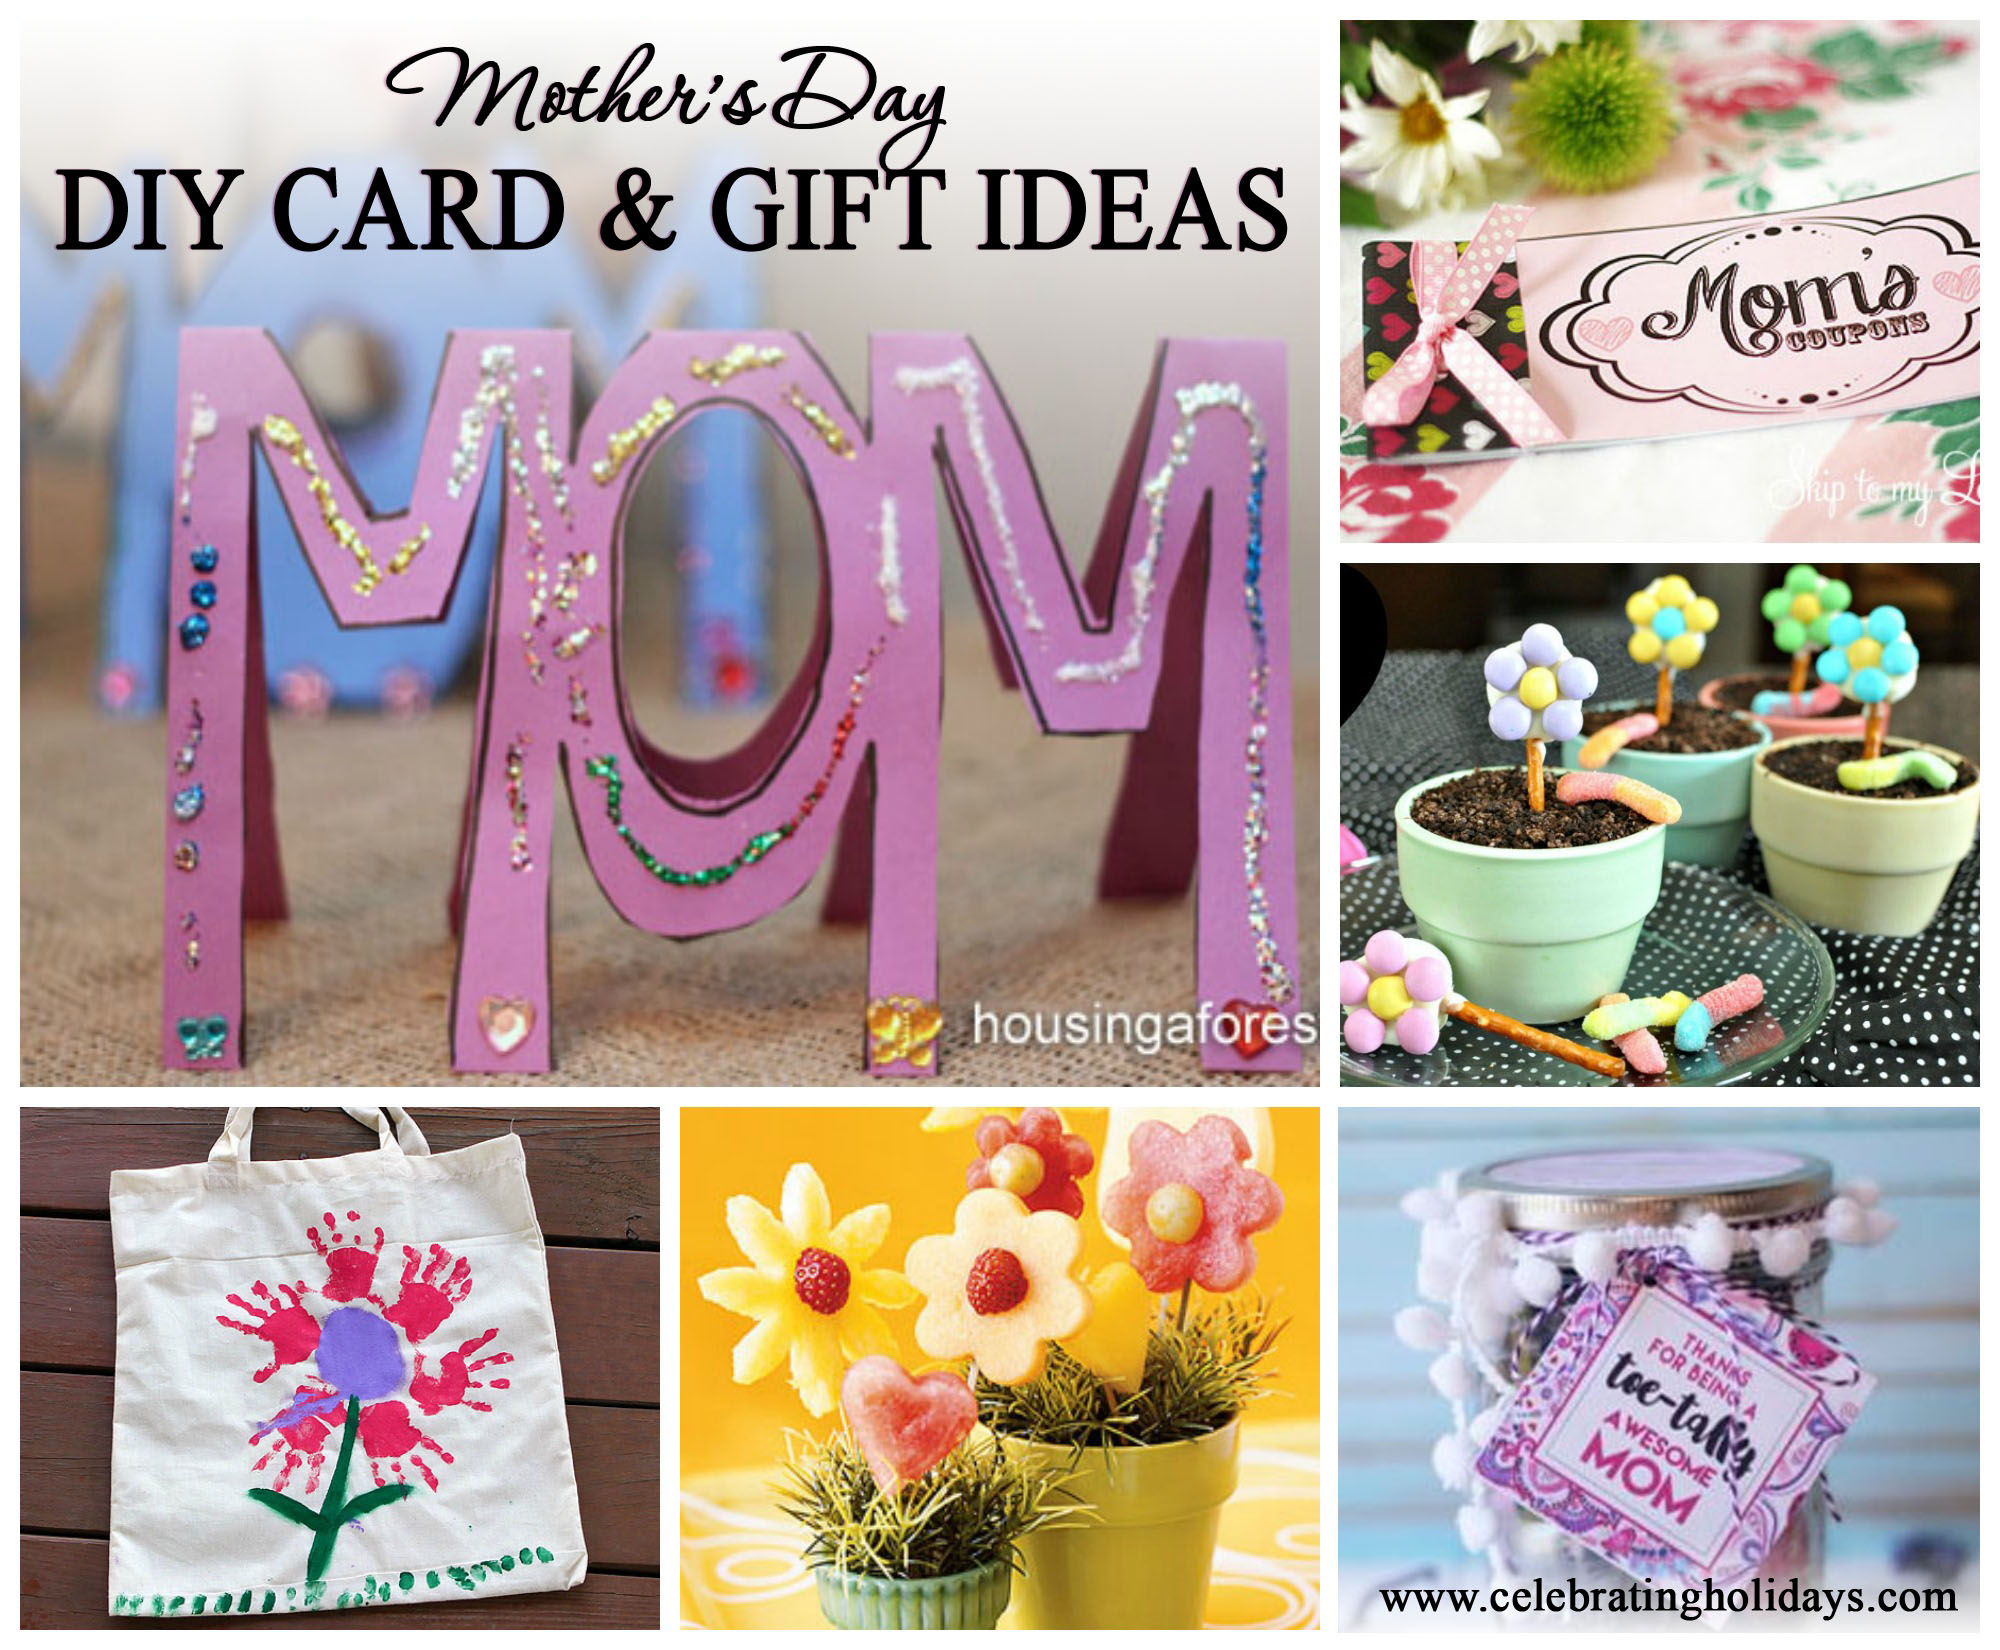 Mothers day card and gift ideas celebrating holidays diy mothers day card and gifts negle Choice Image